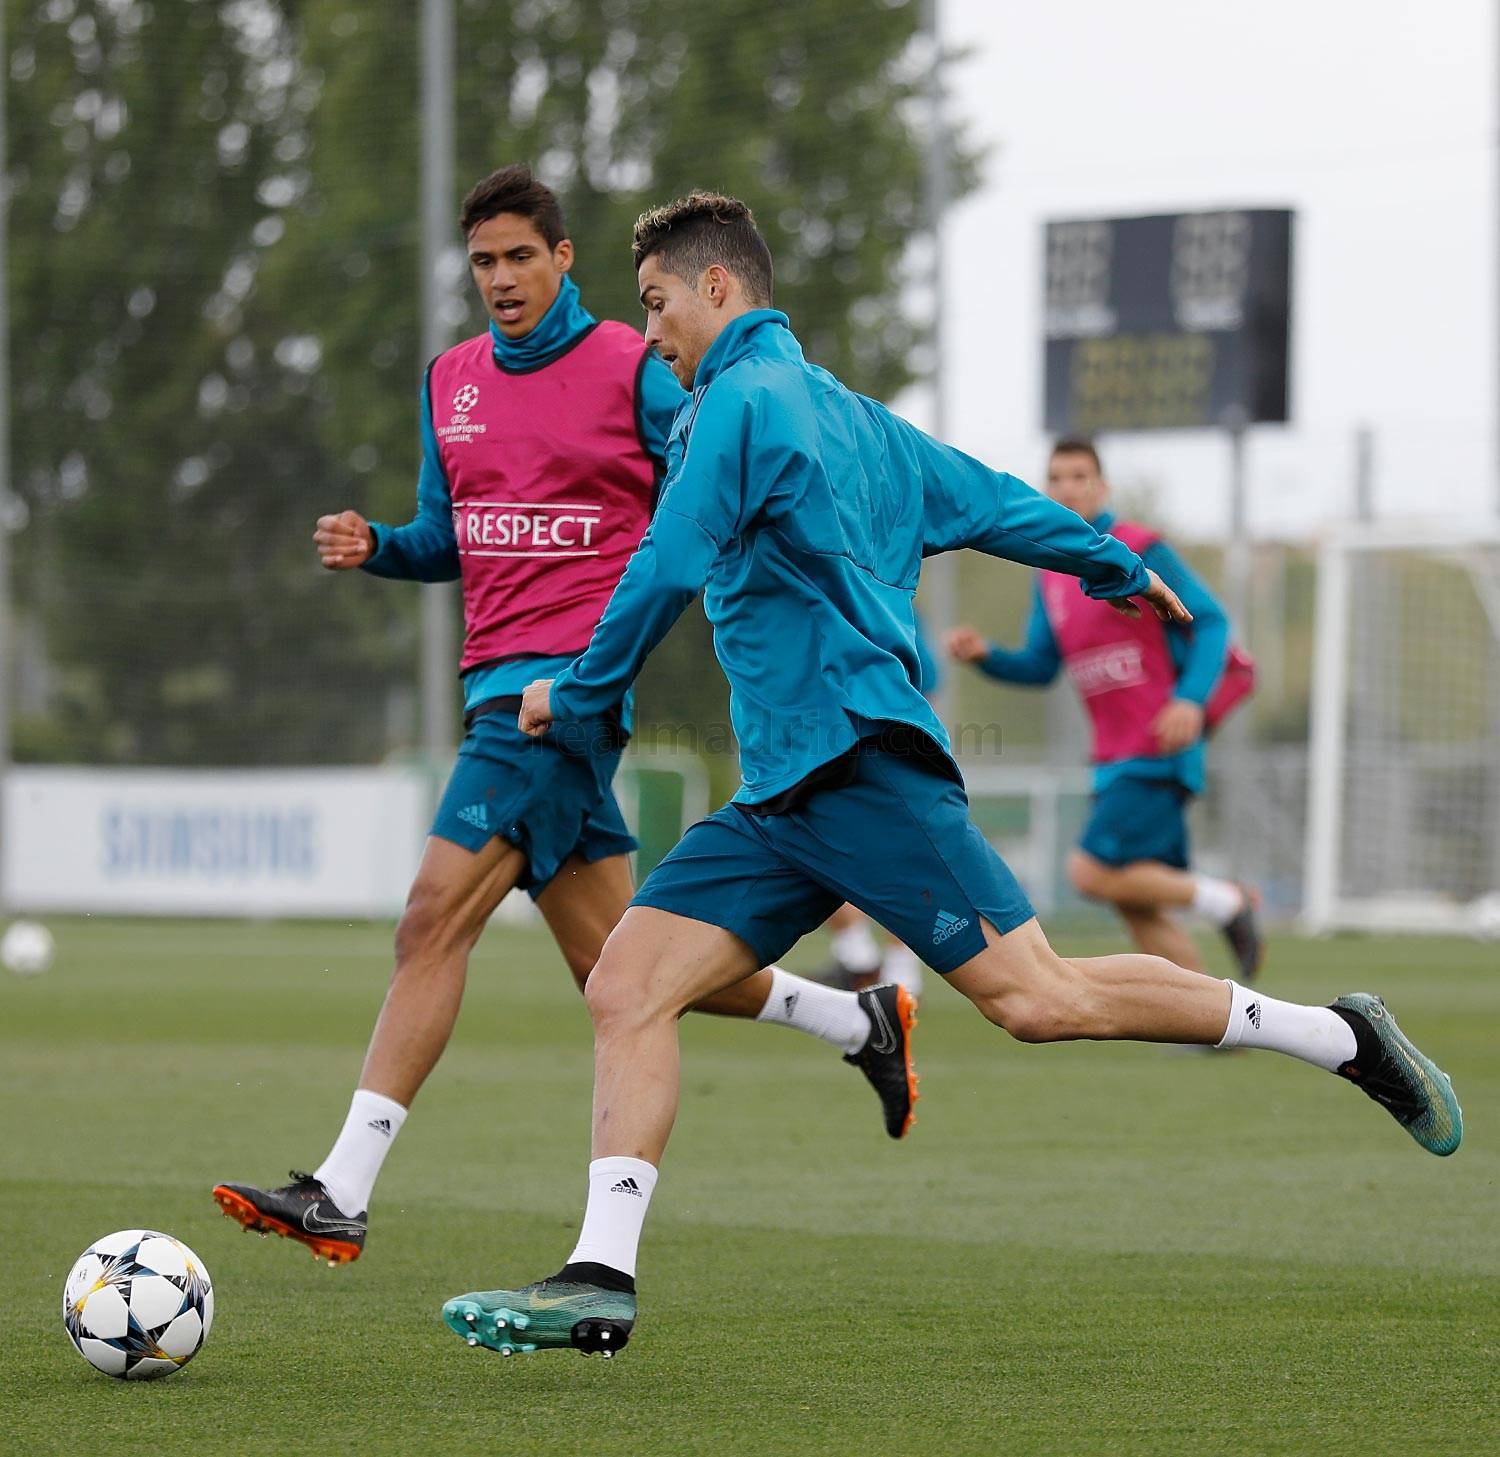 Real Madrid - Entrenamiento del Real Madrid - 30-04-2018